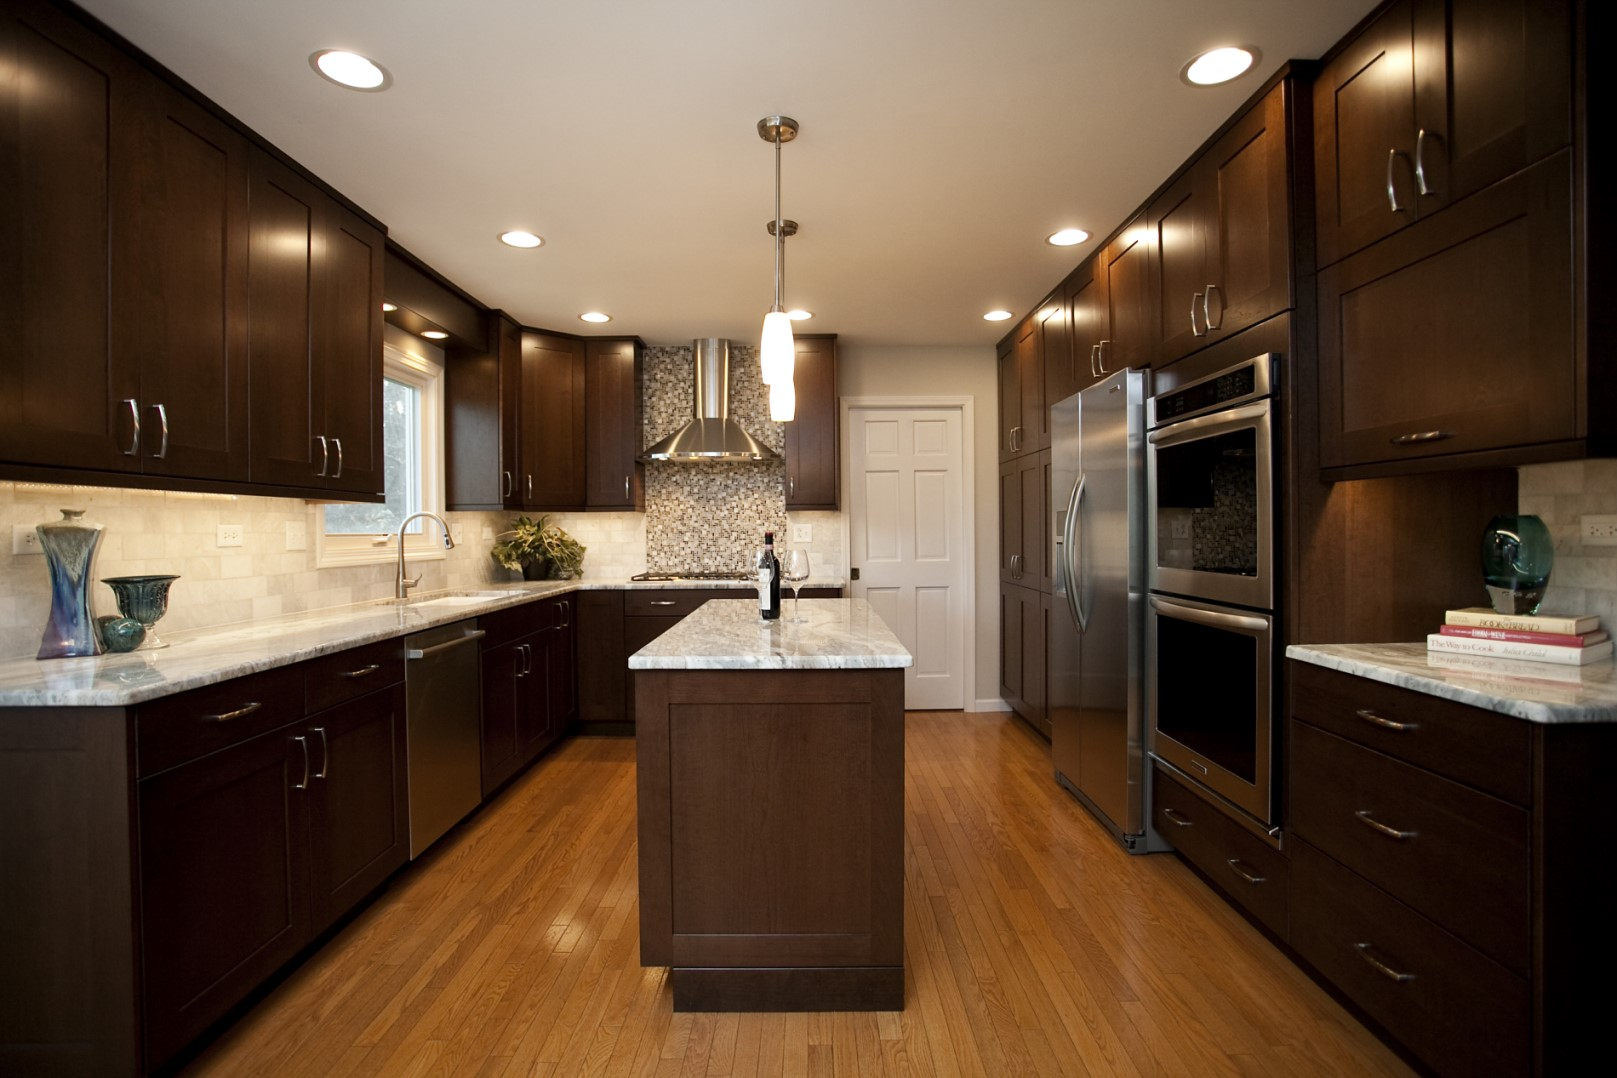 Dark contemporary cabinets with light countertops in a contemporary kitchen